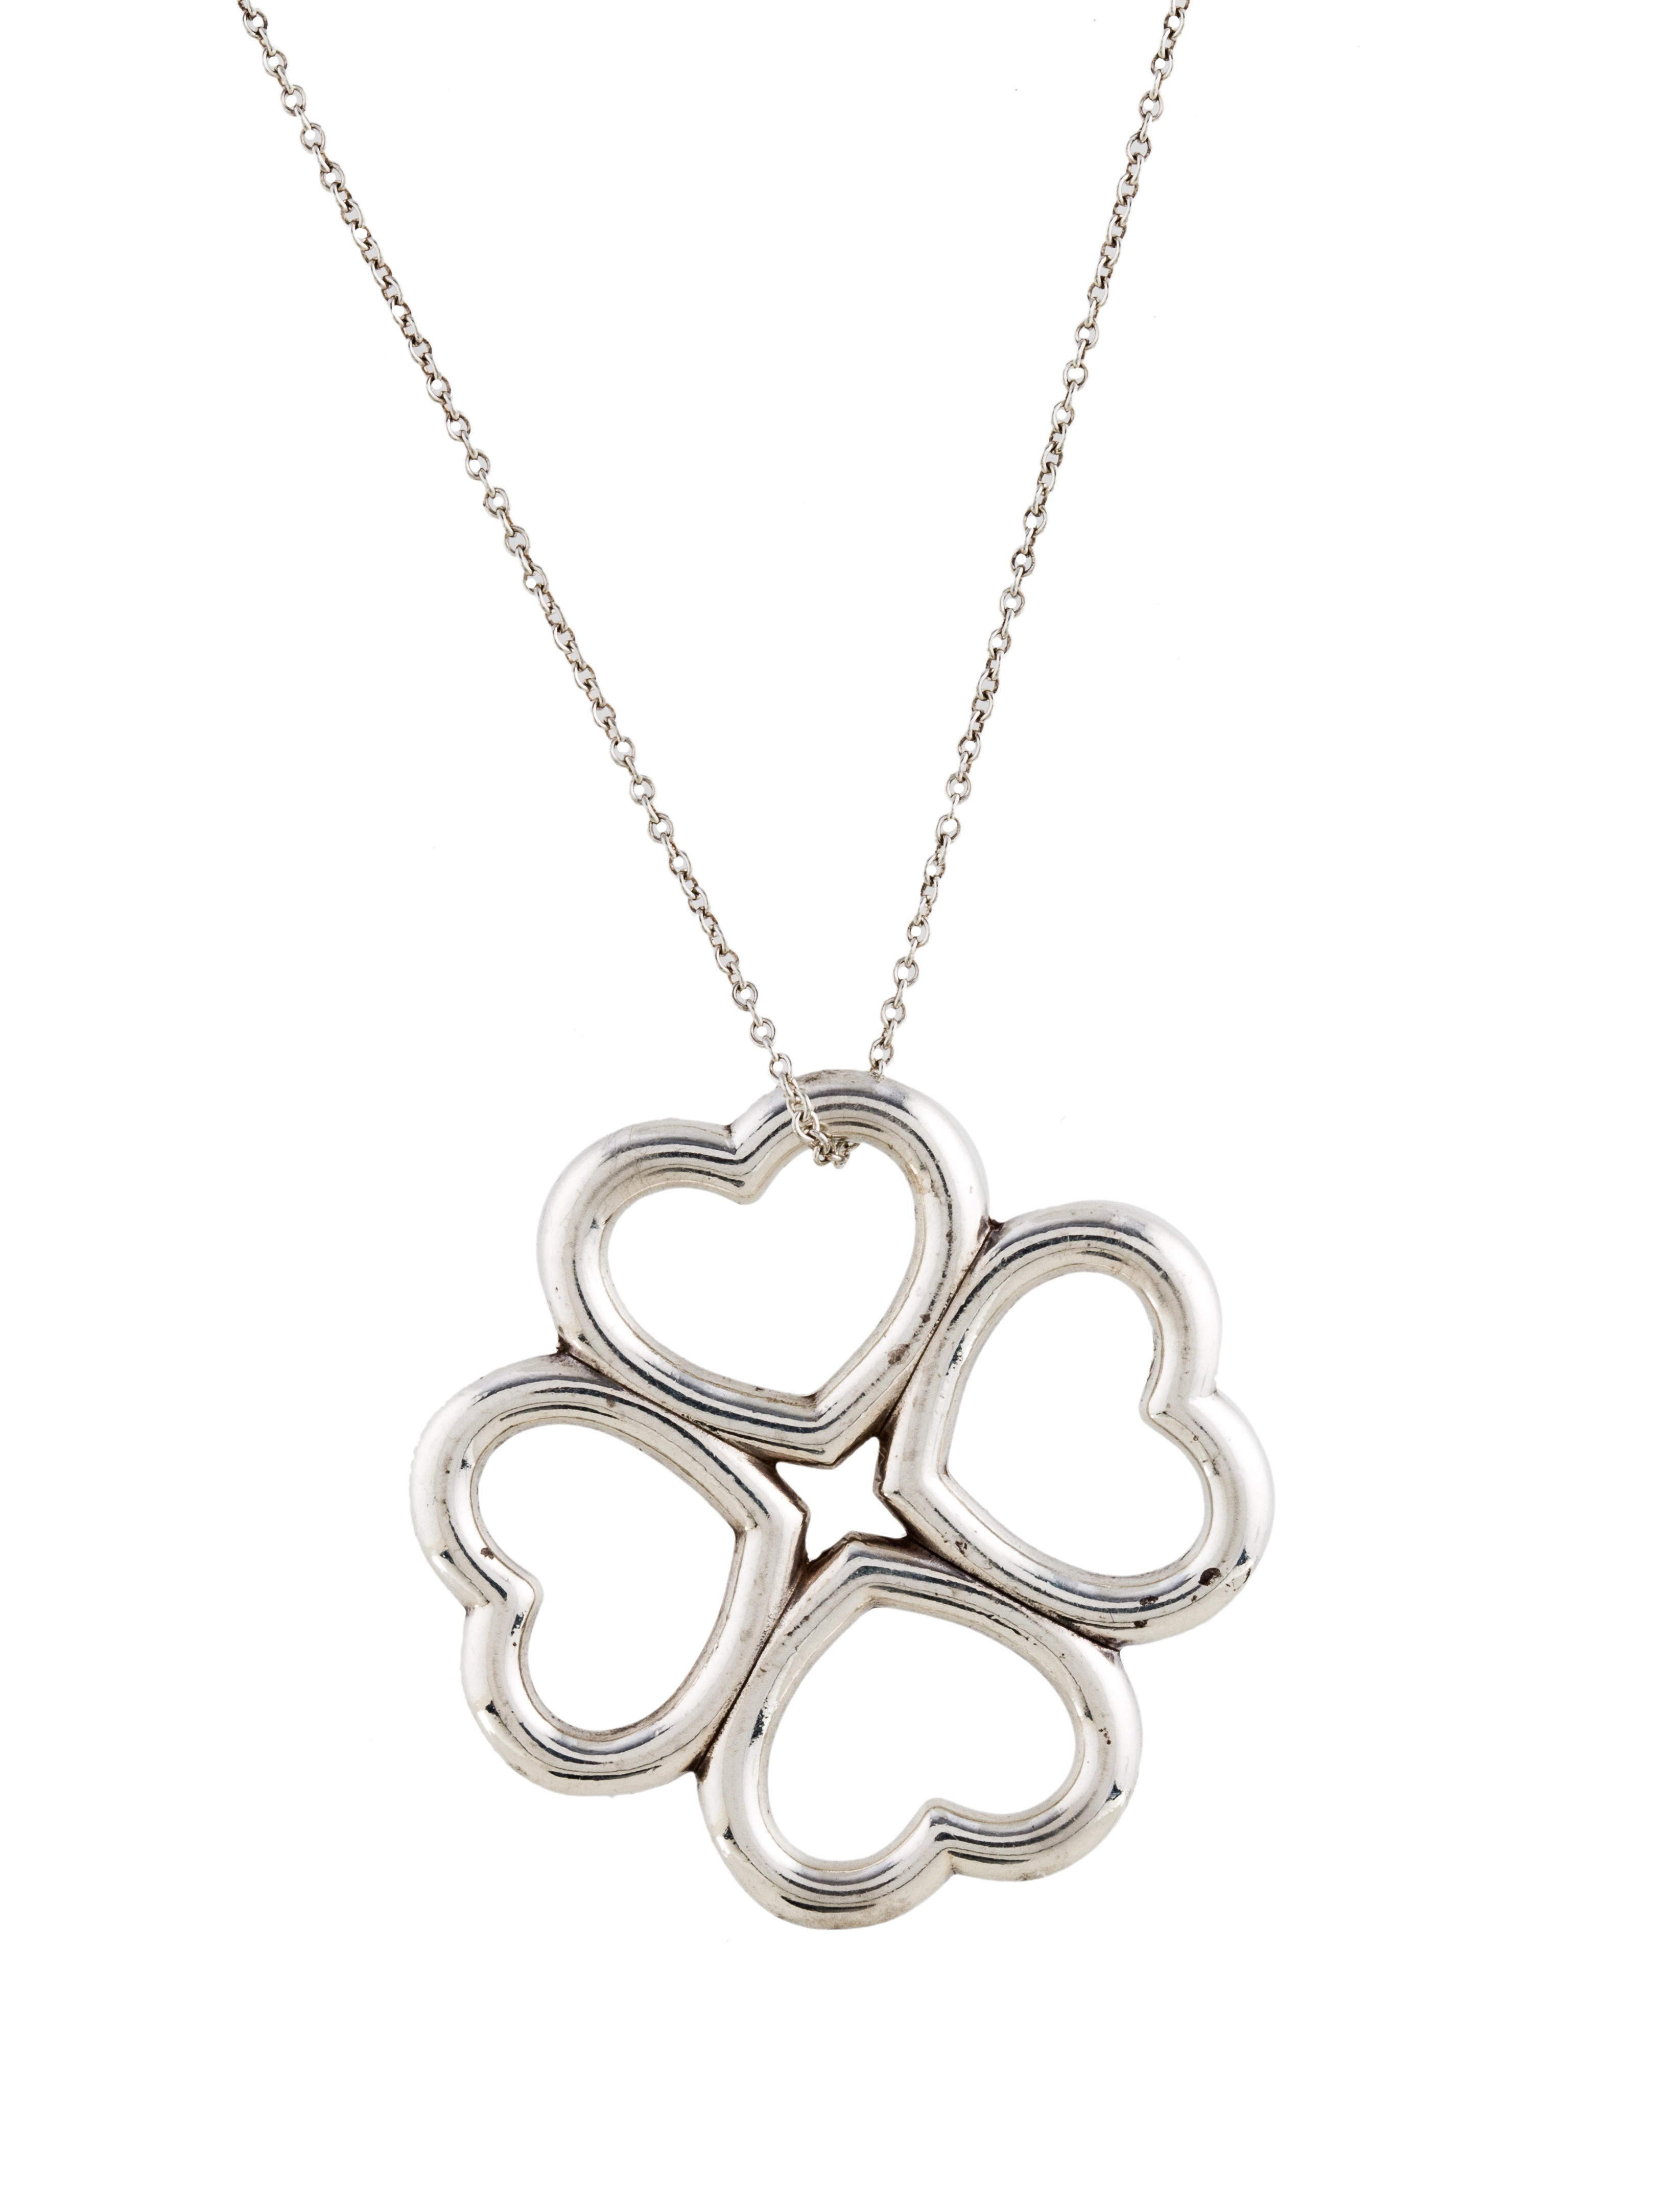 Tiffany co four hearts clover pendant necklace necklaces four hearts clover pendant necklace aloadofball Image collections